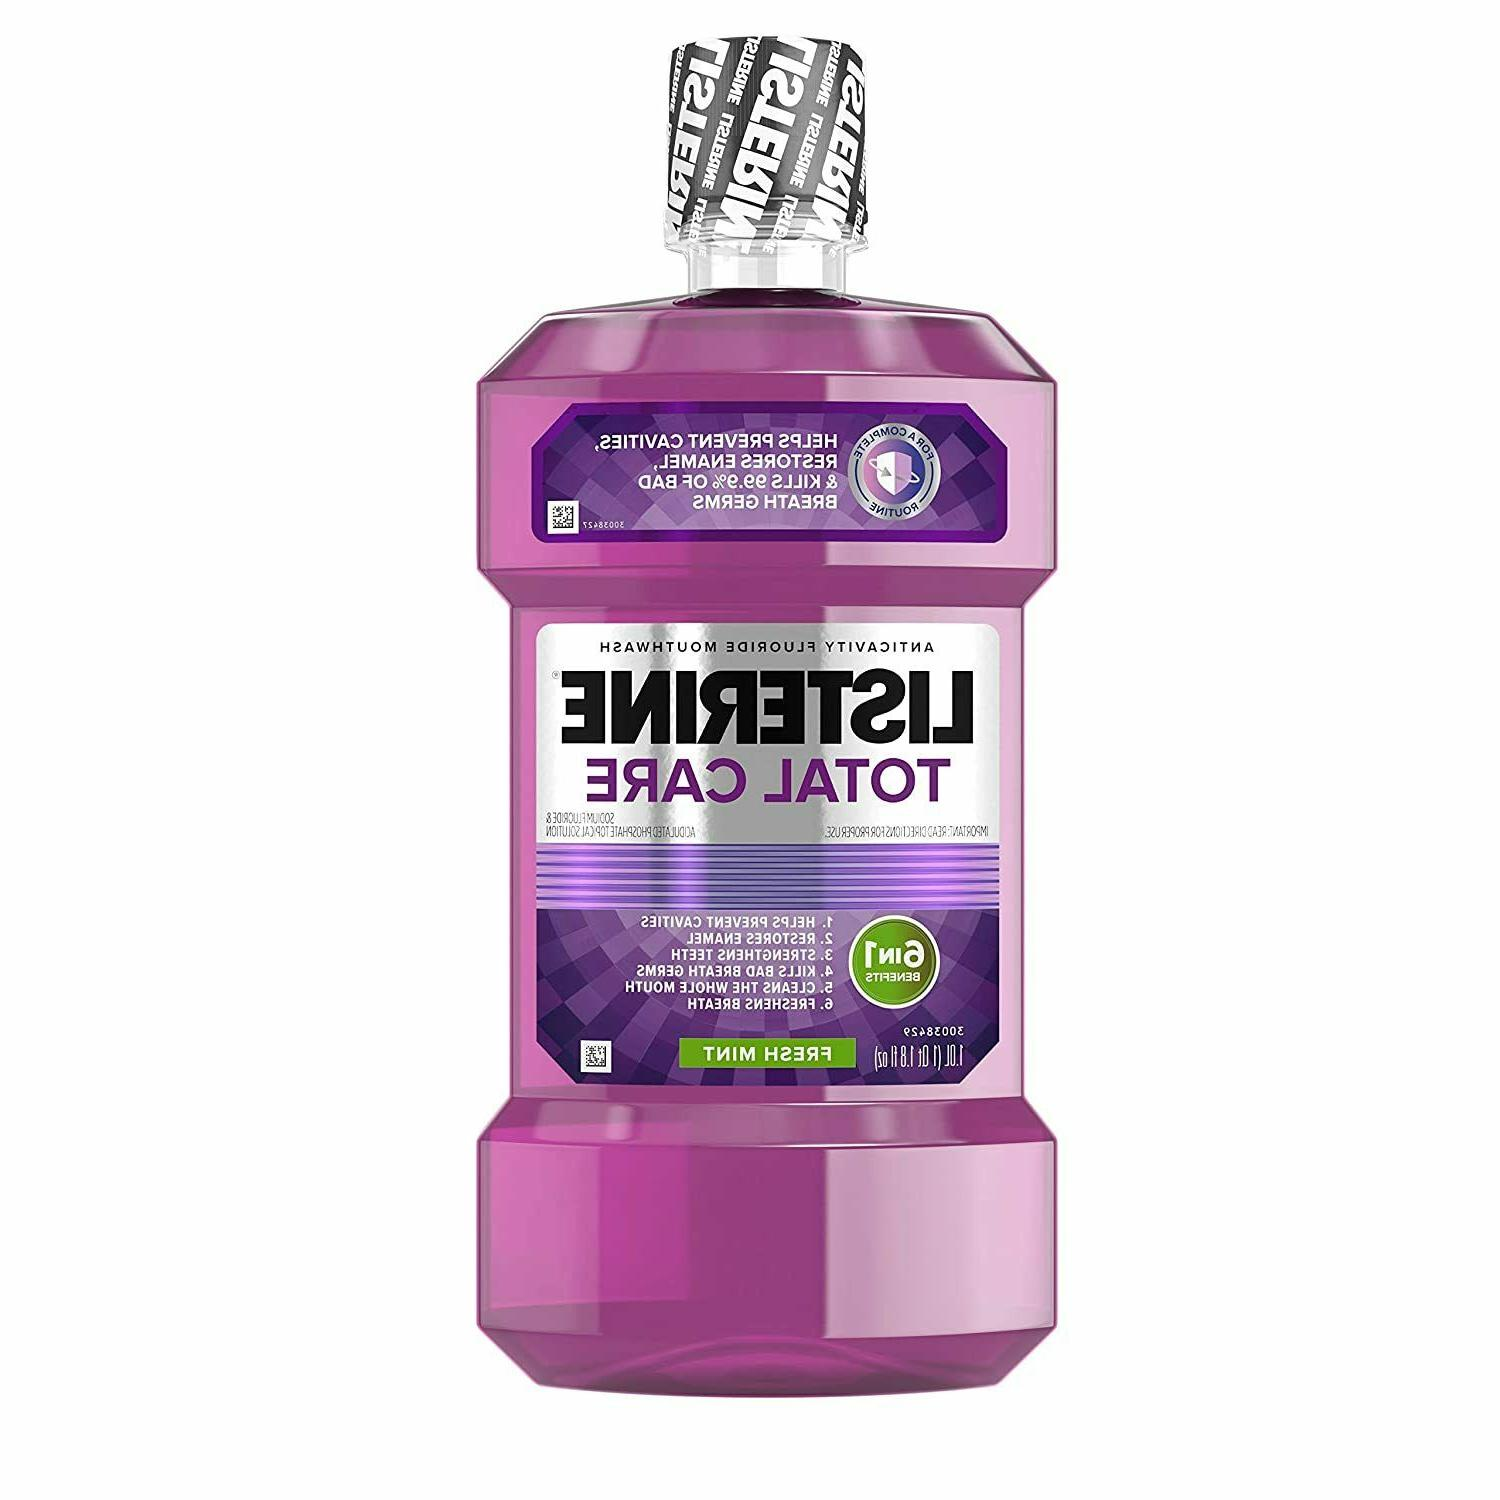 listerine total care anticavity fluoride mouthwash 6